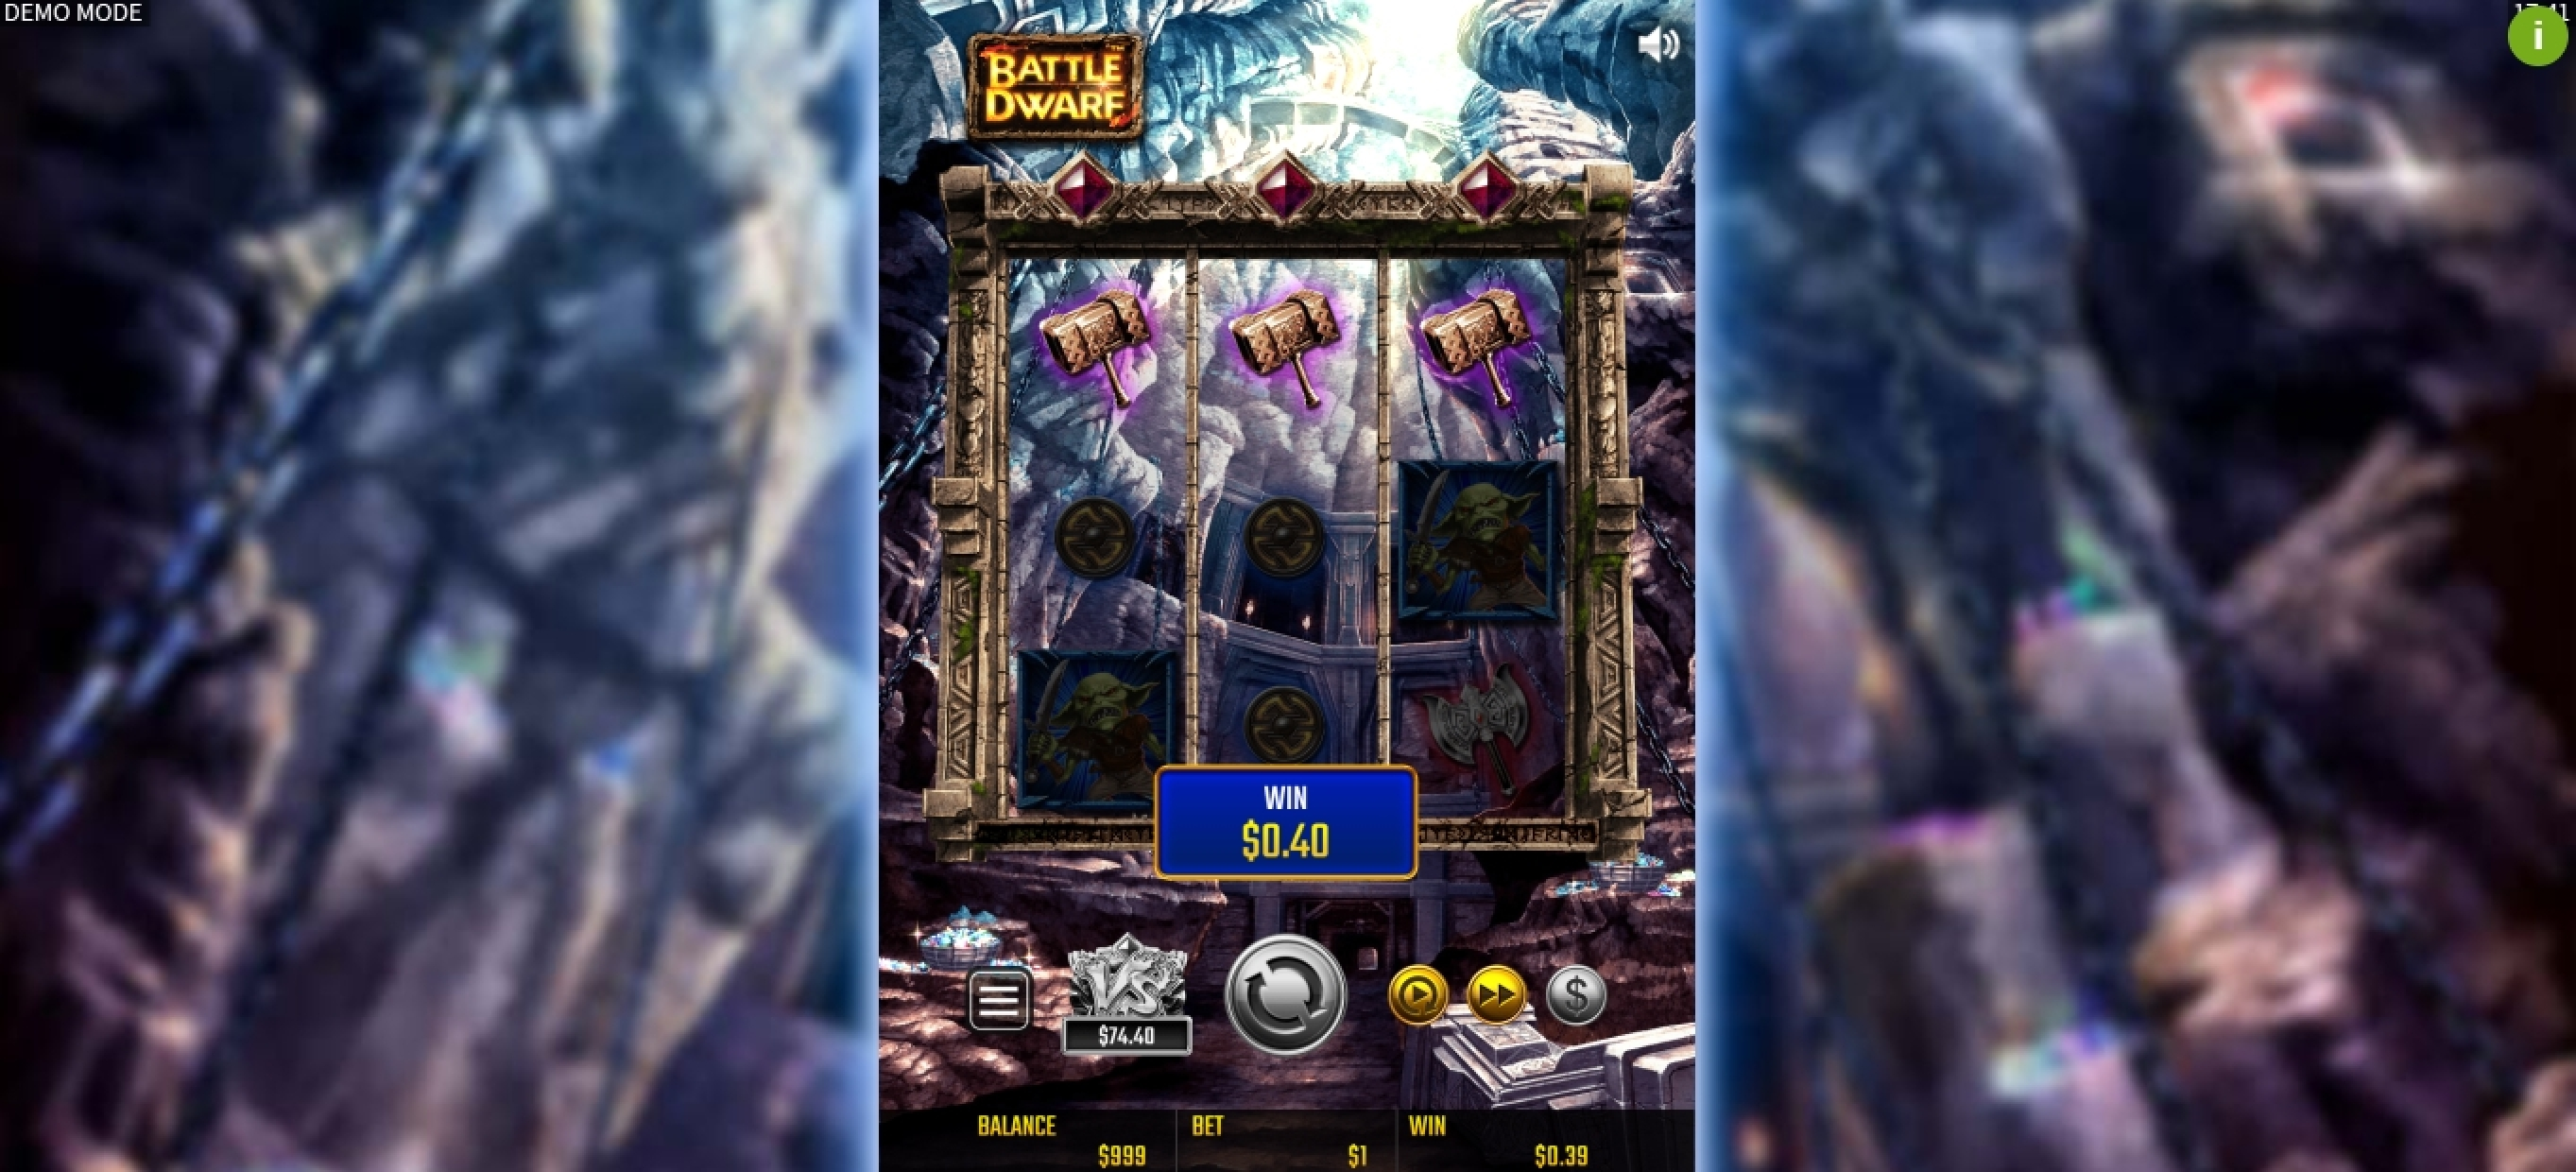 Win Money in Battle Dwarf Free Slot Game by JTG